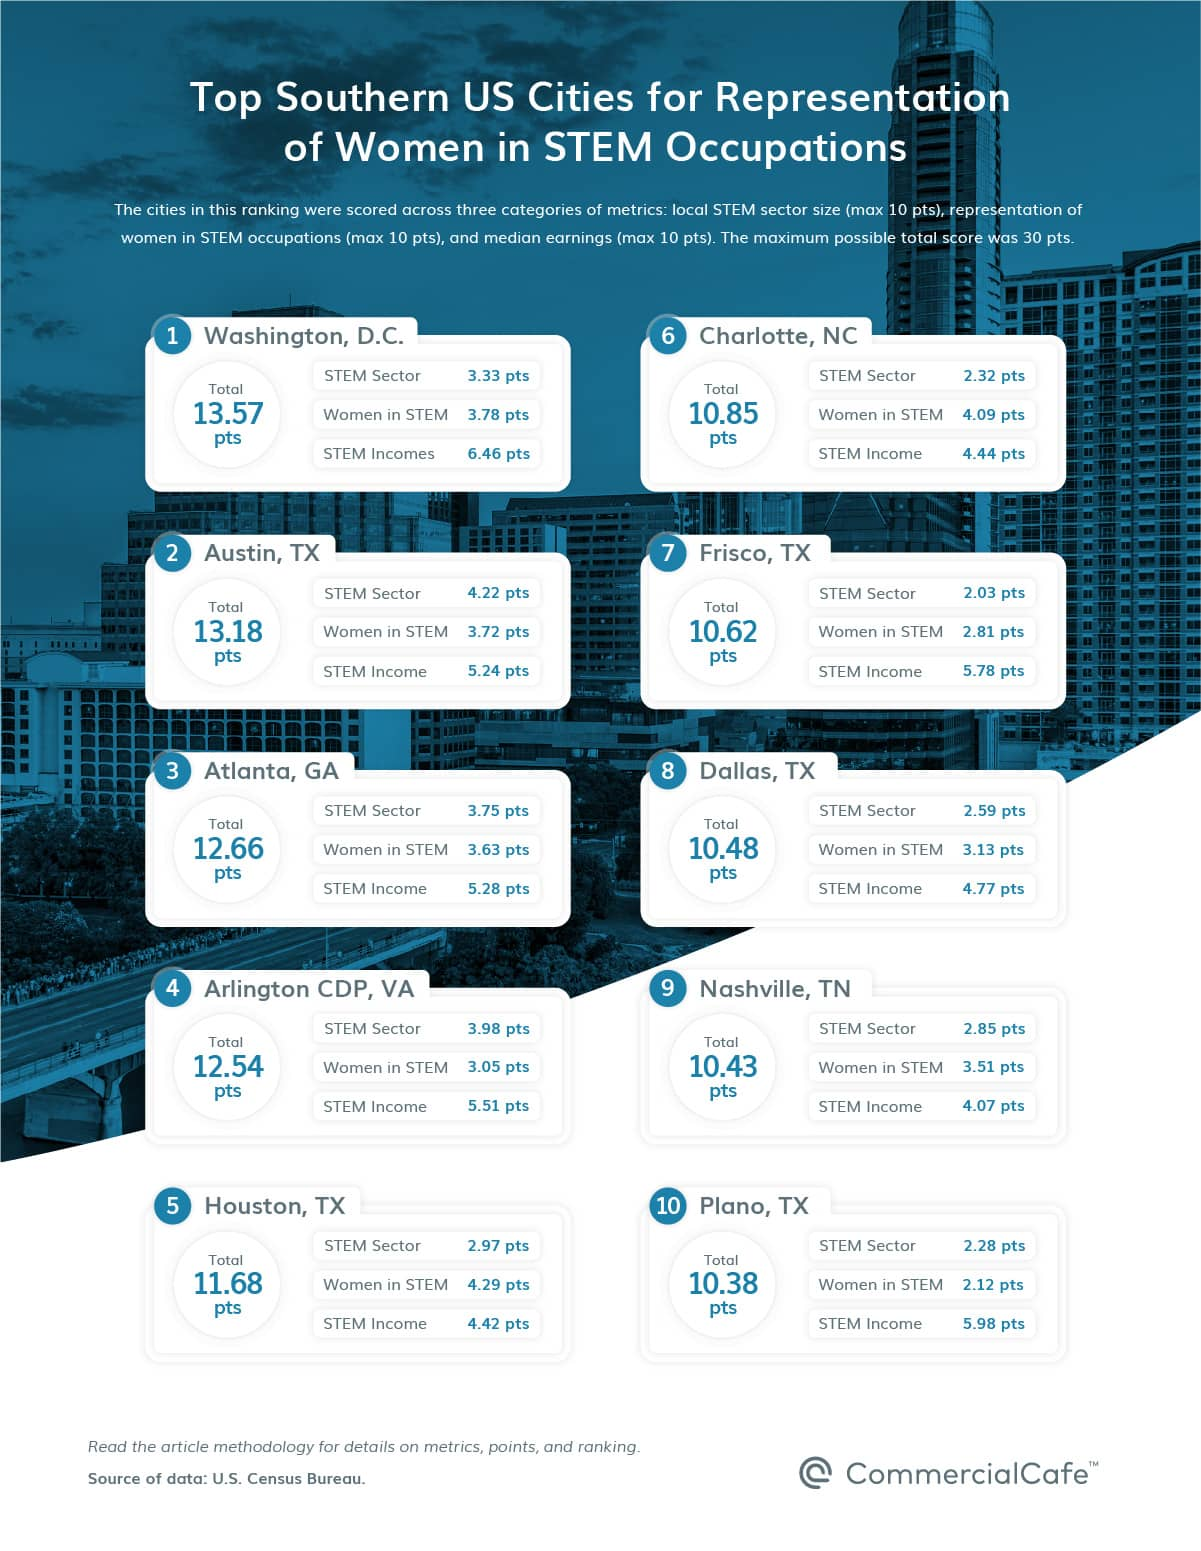 top 10 top south us cities by representation of women in stem 2021